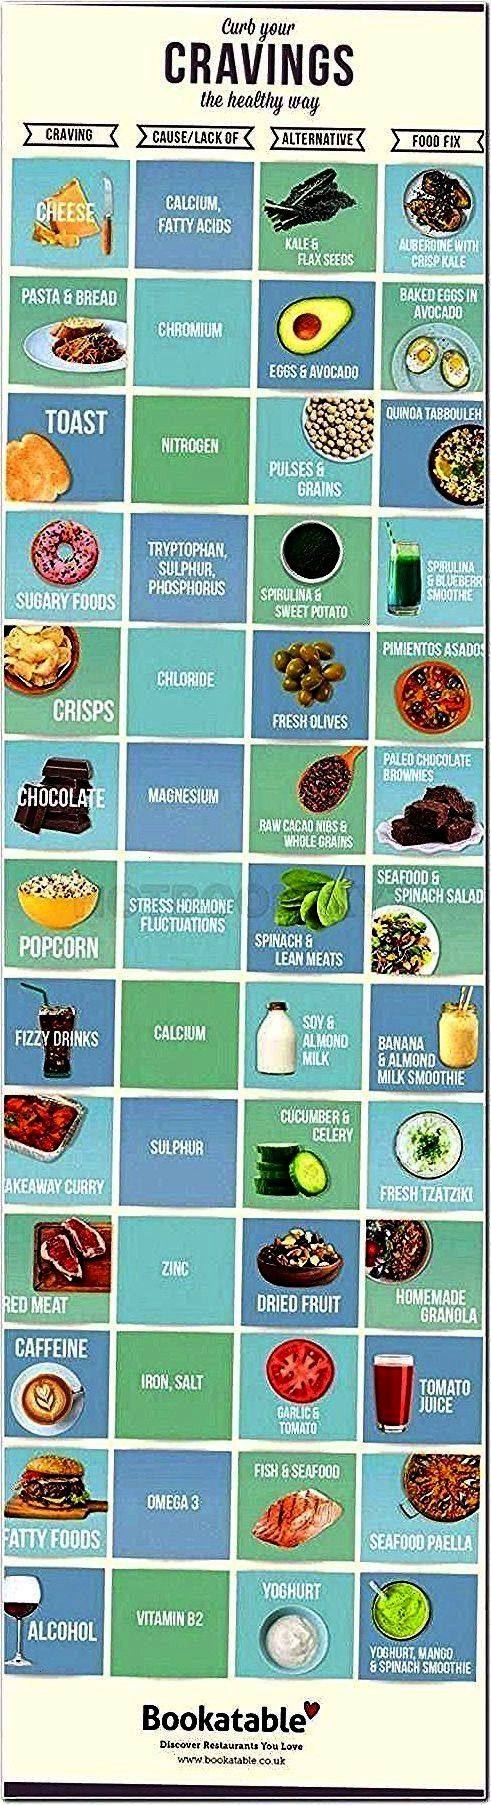 Vegan Fast Food simple  Vegan Fast Food  Personal Body Type Plan to Make Your Body Slimmer at Home Click to download the app on App Store now Related Article How to Get a...